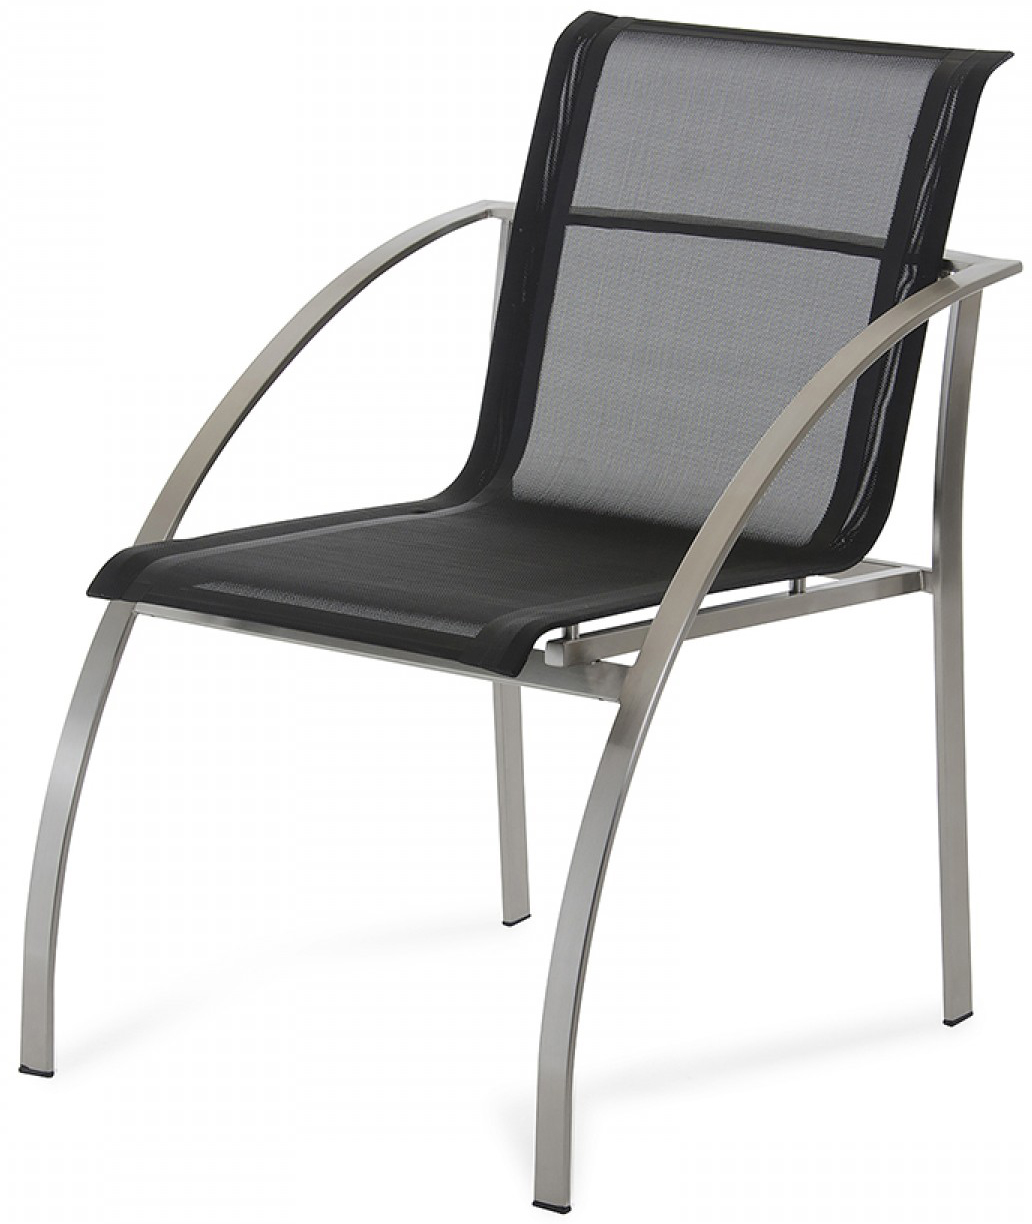 This is The Lanikai Dining Chair